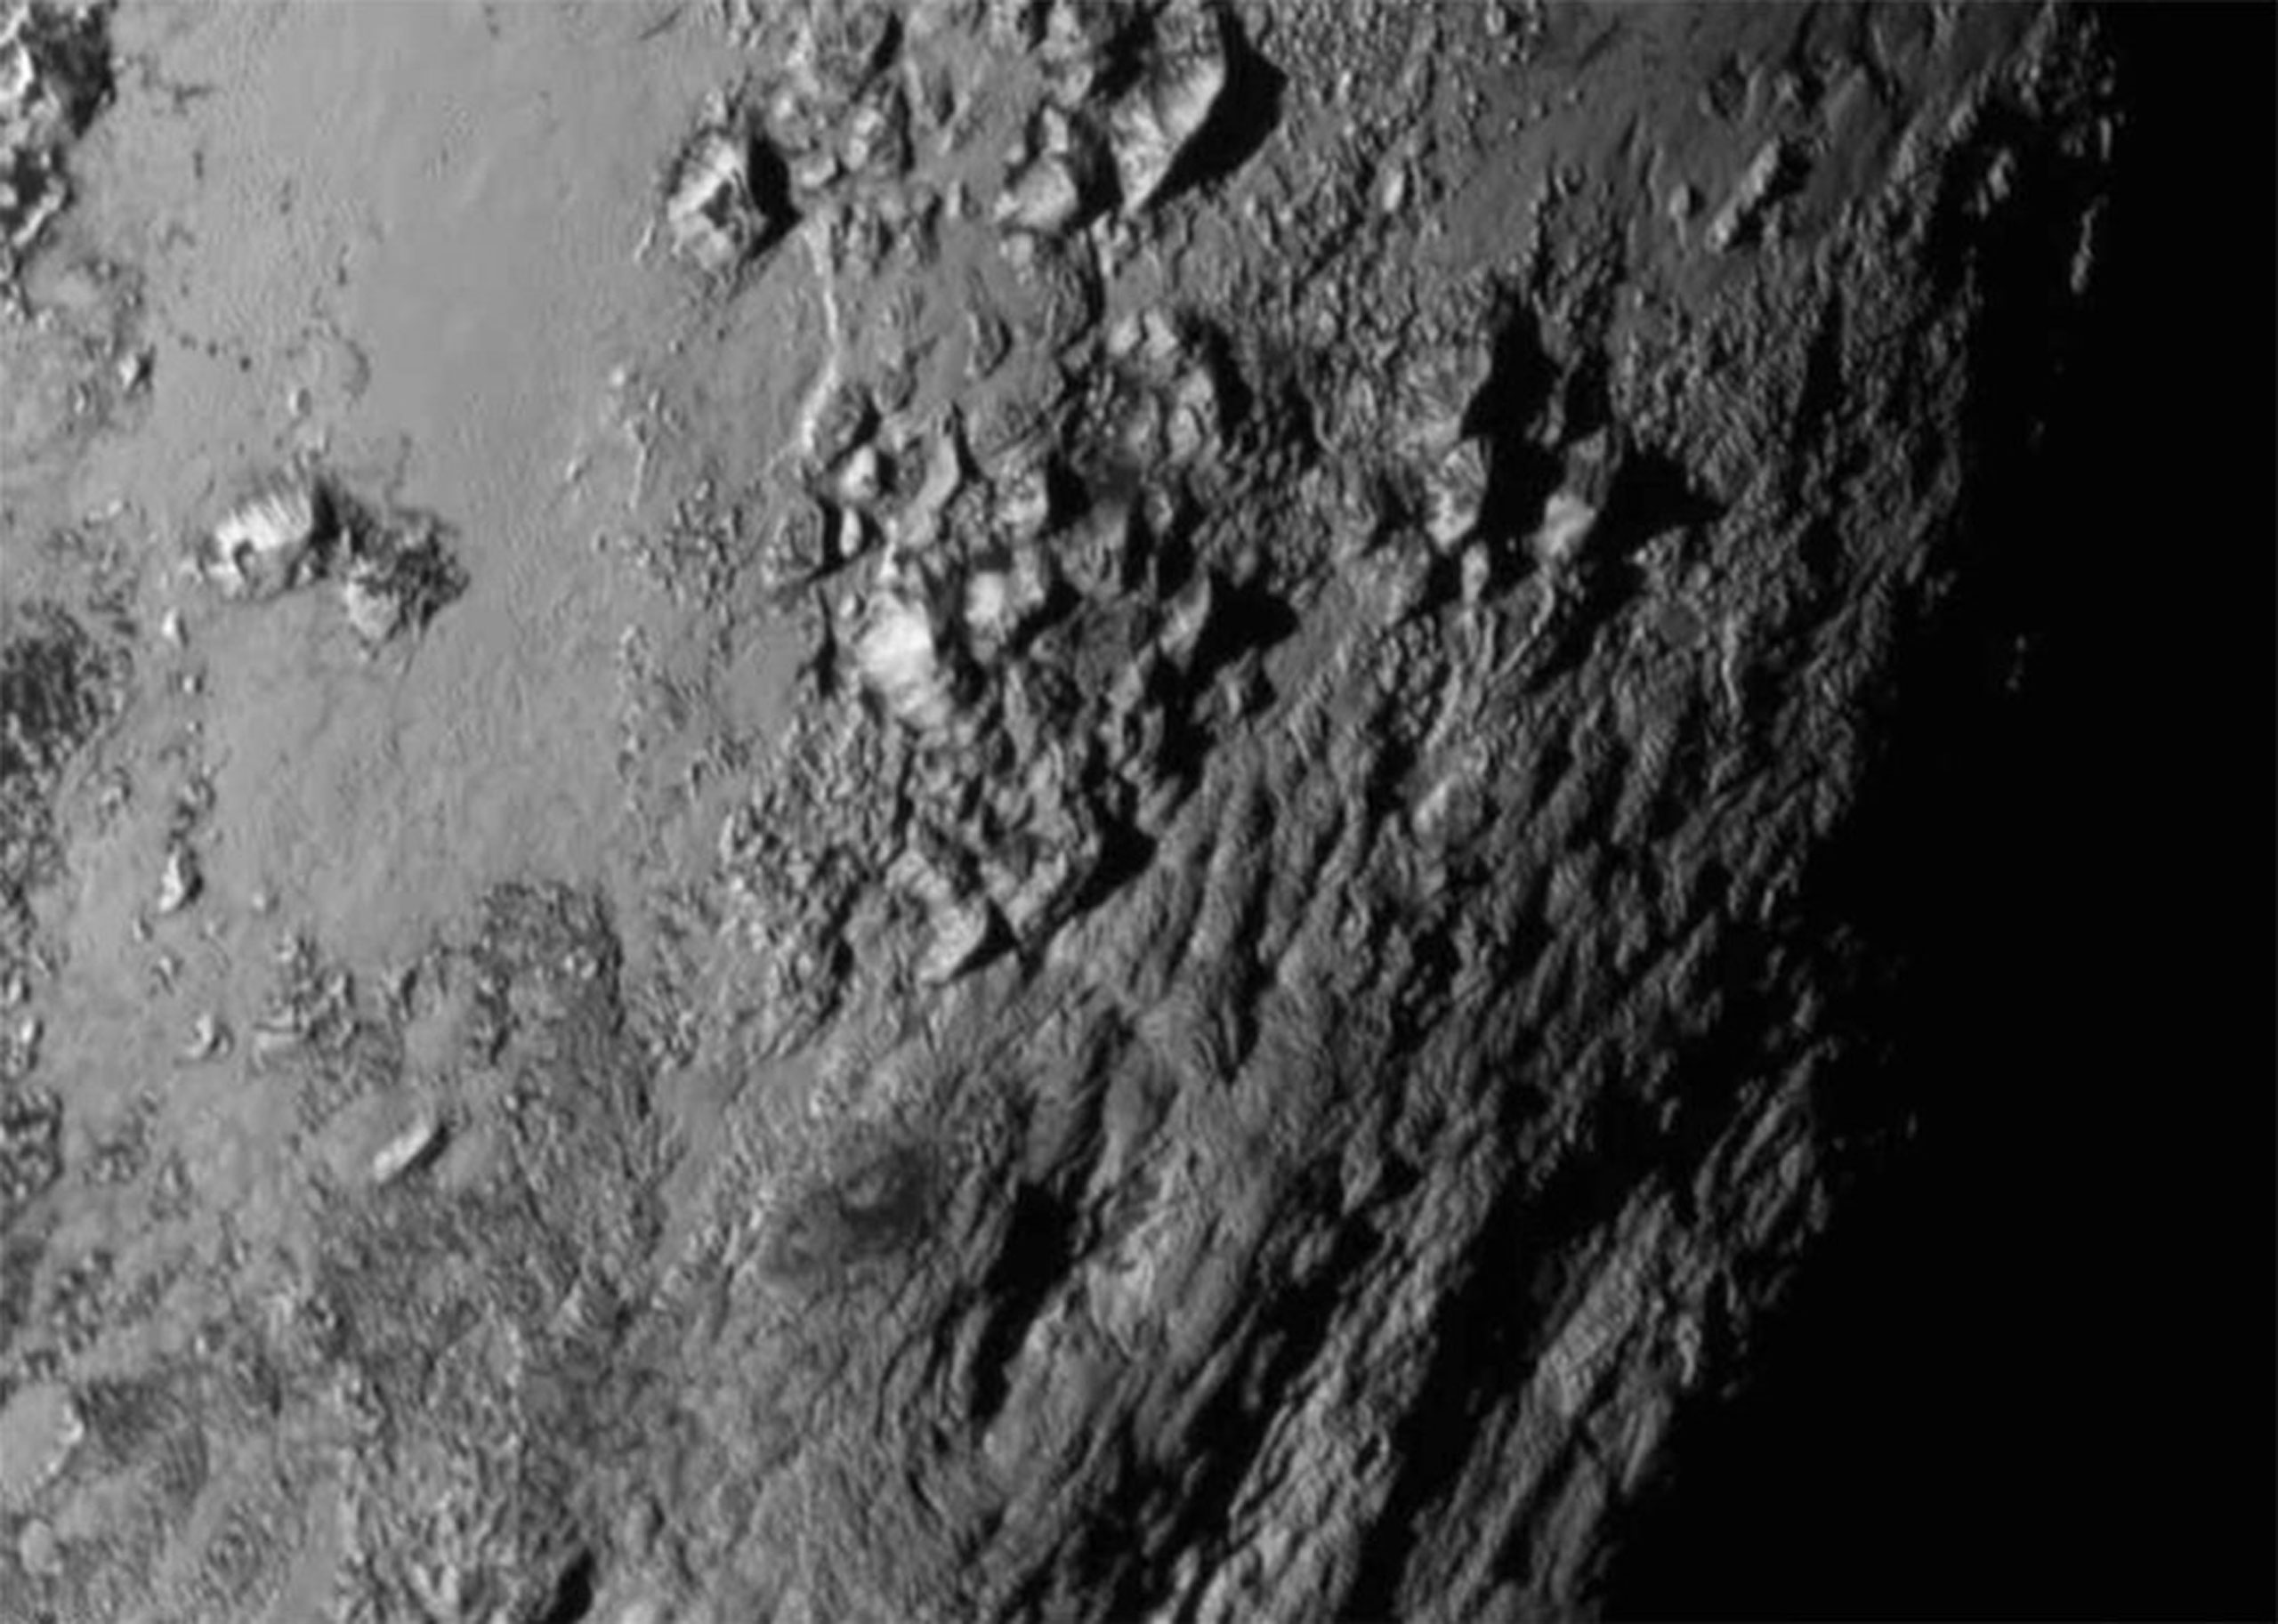 A close-up image of a region near  Pluto's equator shows a range of mountains rising as high as 11,000 feet (3,500 meters) taken by NASA's New Horizons spacecraft as it passed within 7,800 feet of the dwarf planet on July 14, 2015.